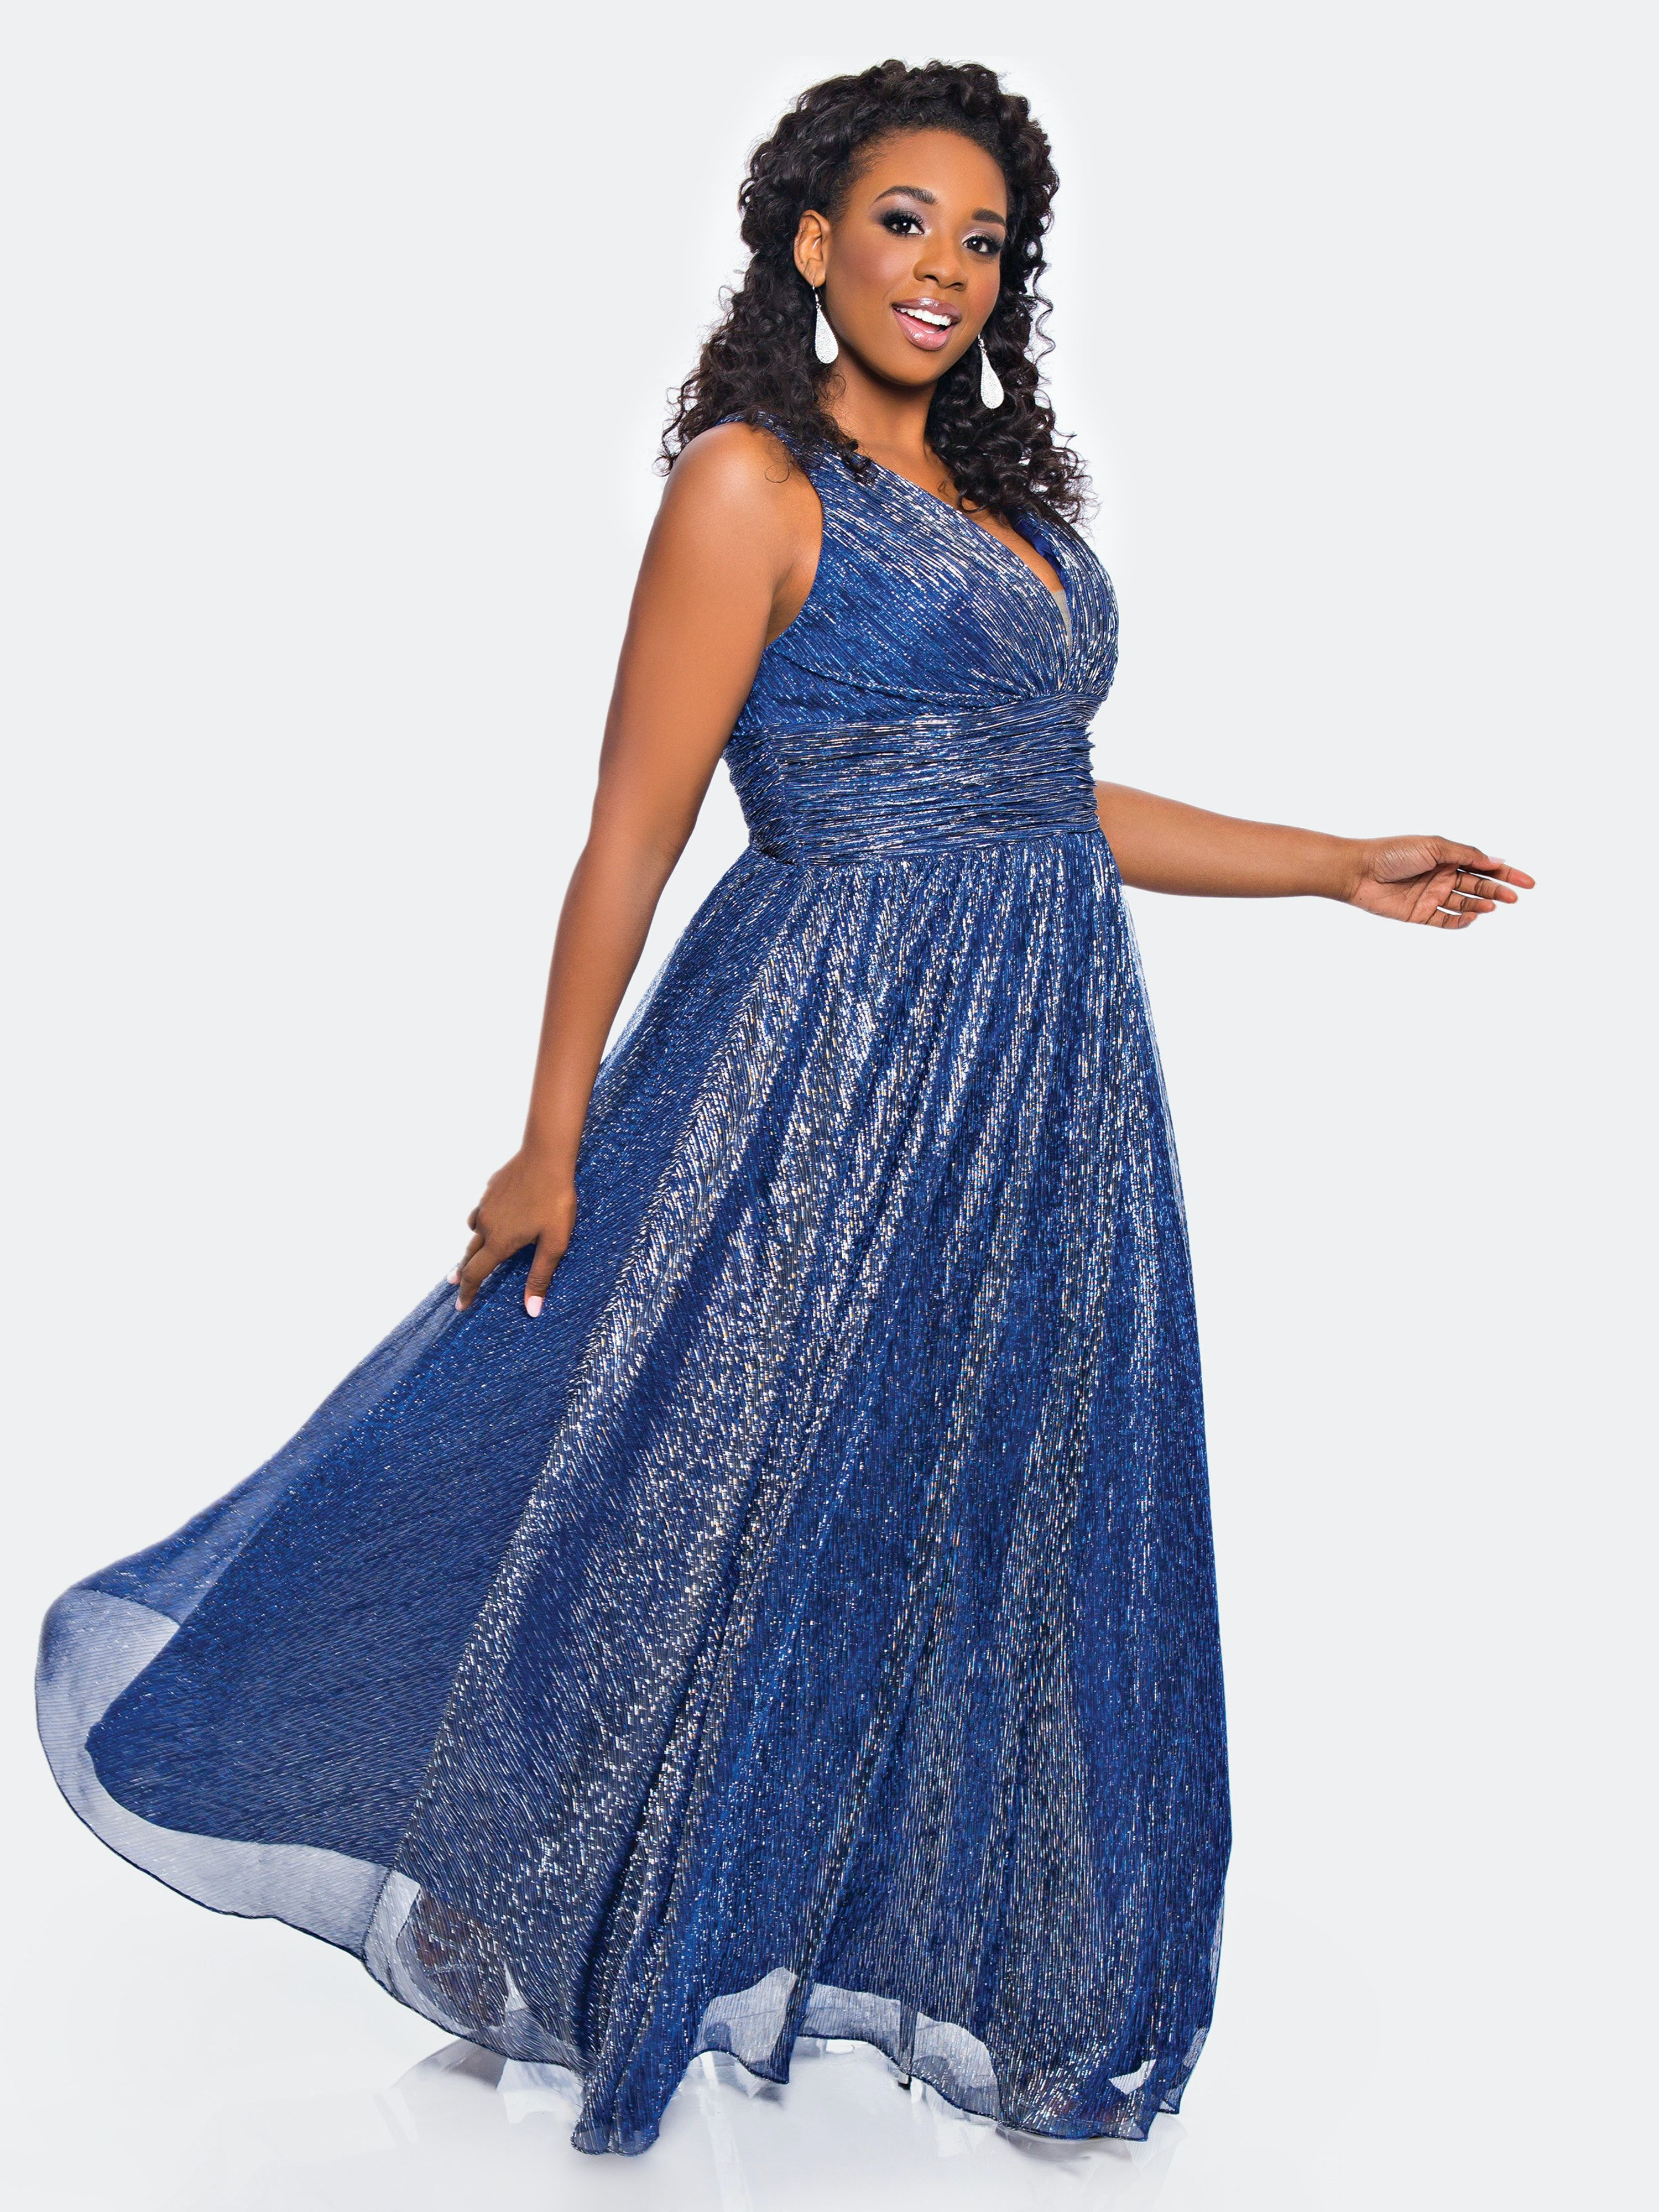 Galaxy Girl Dress 34 Also In 32 28 18 14 26 20 16 24 22 30 36 In 2021 Girls Formal Dresses Metallic Prom Dresses Plus Size Prom Dresses